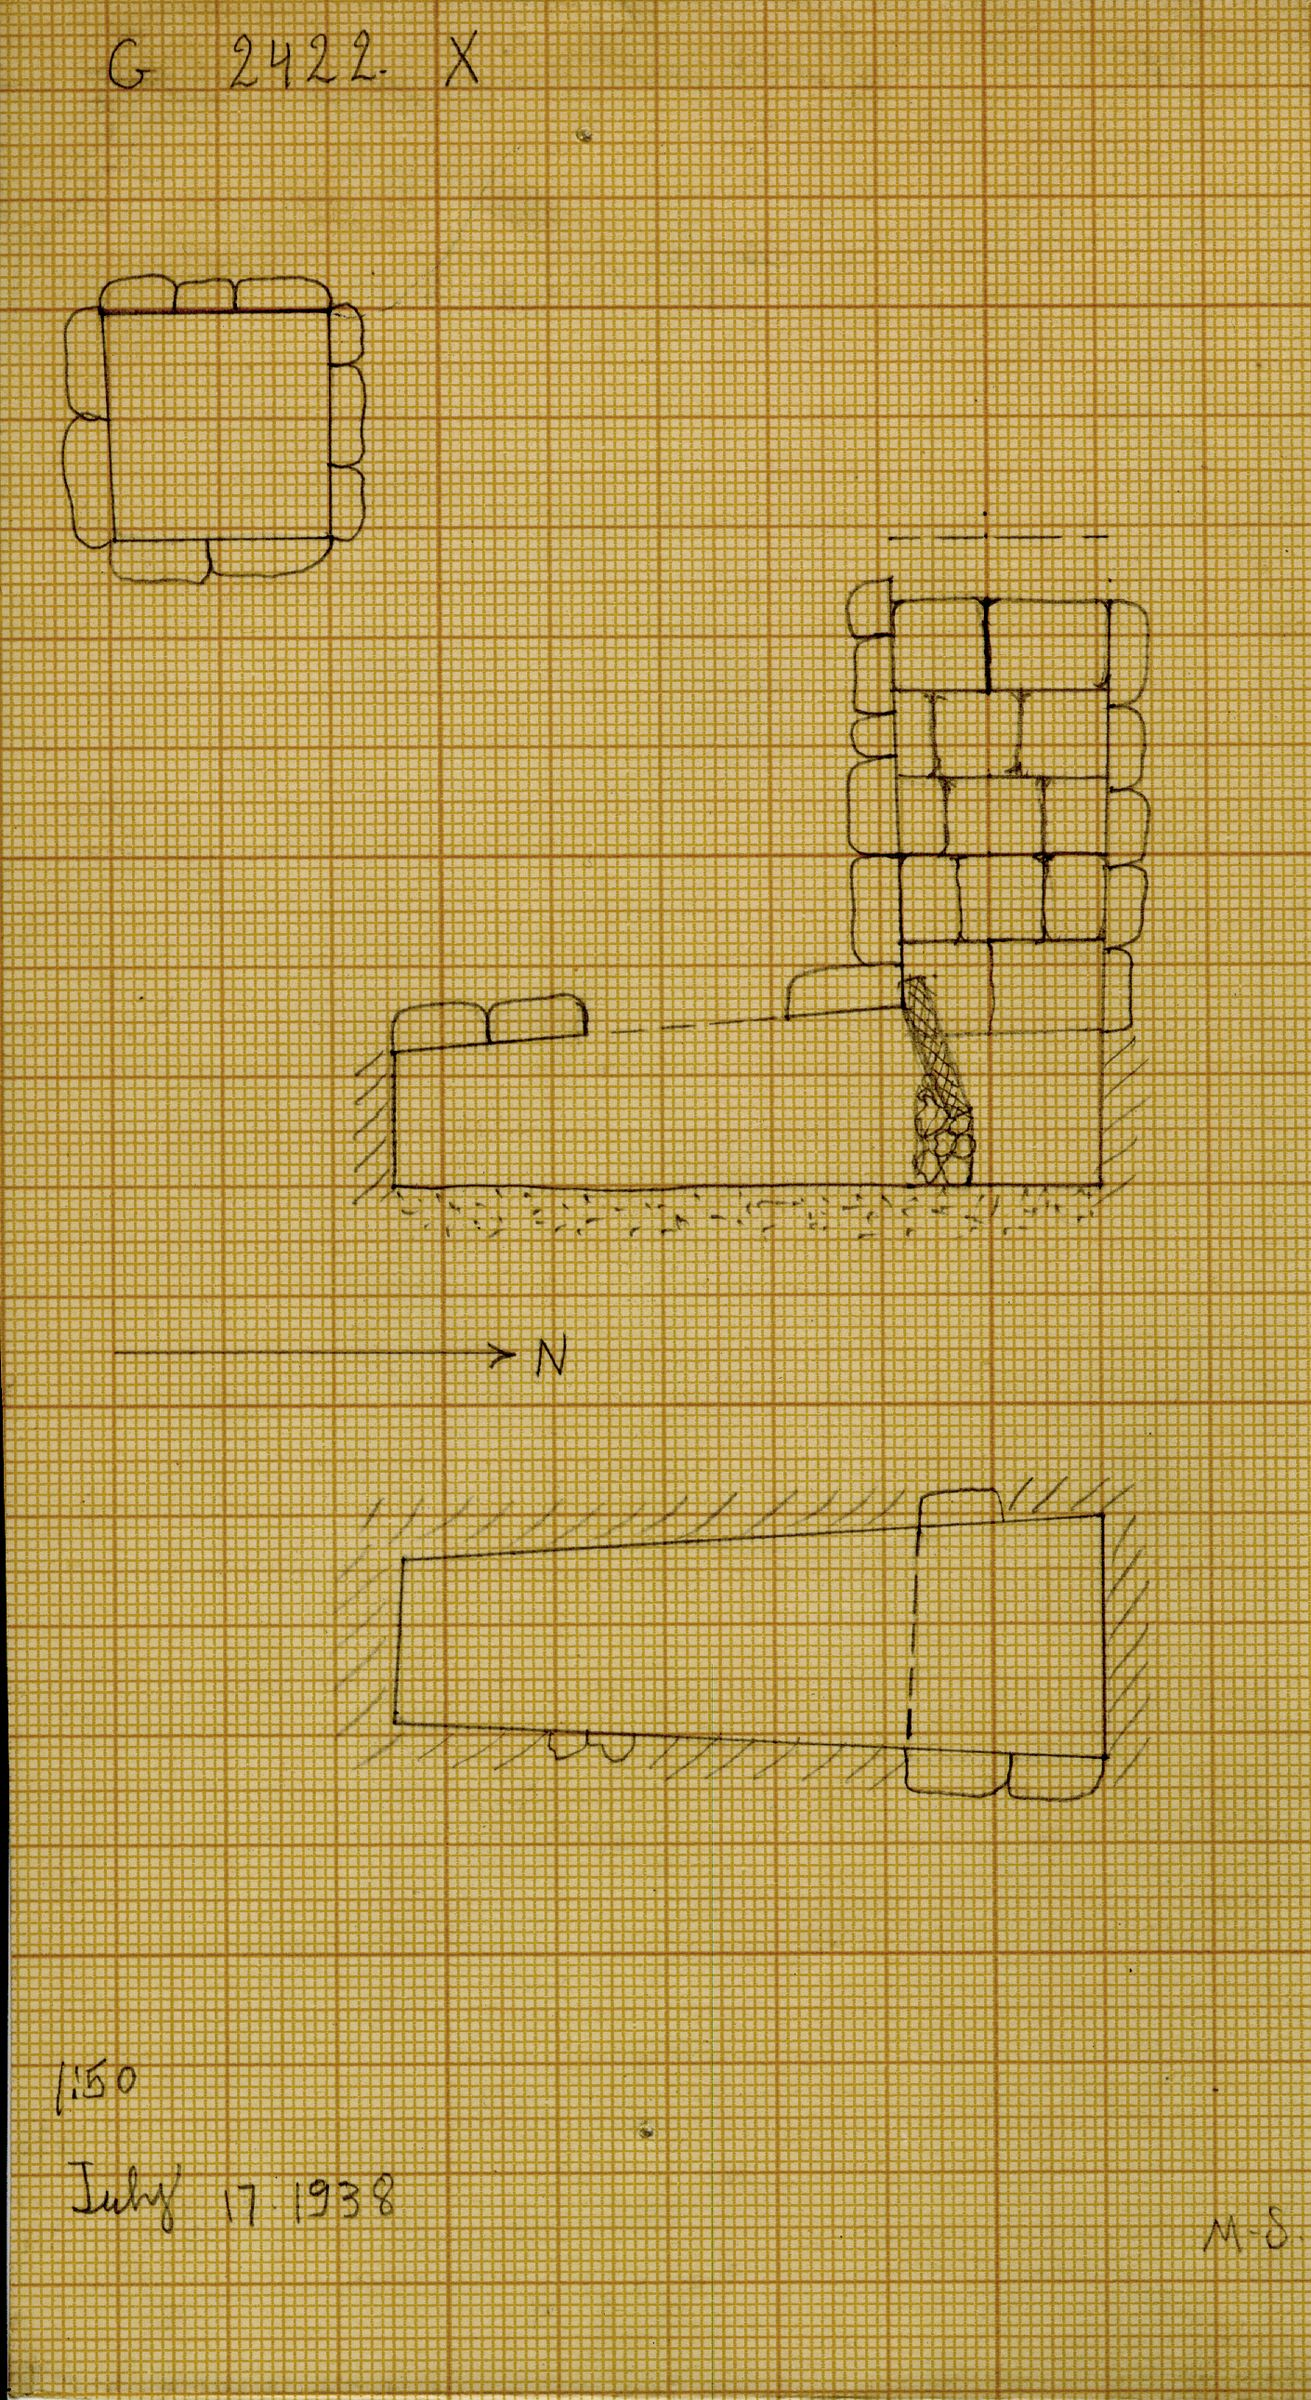 Maps and plans: G 2422, Shaft X